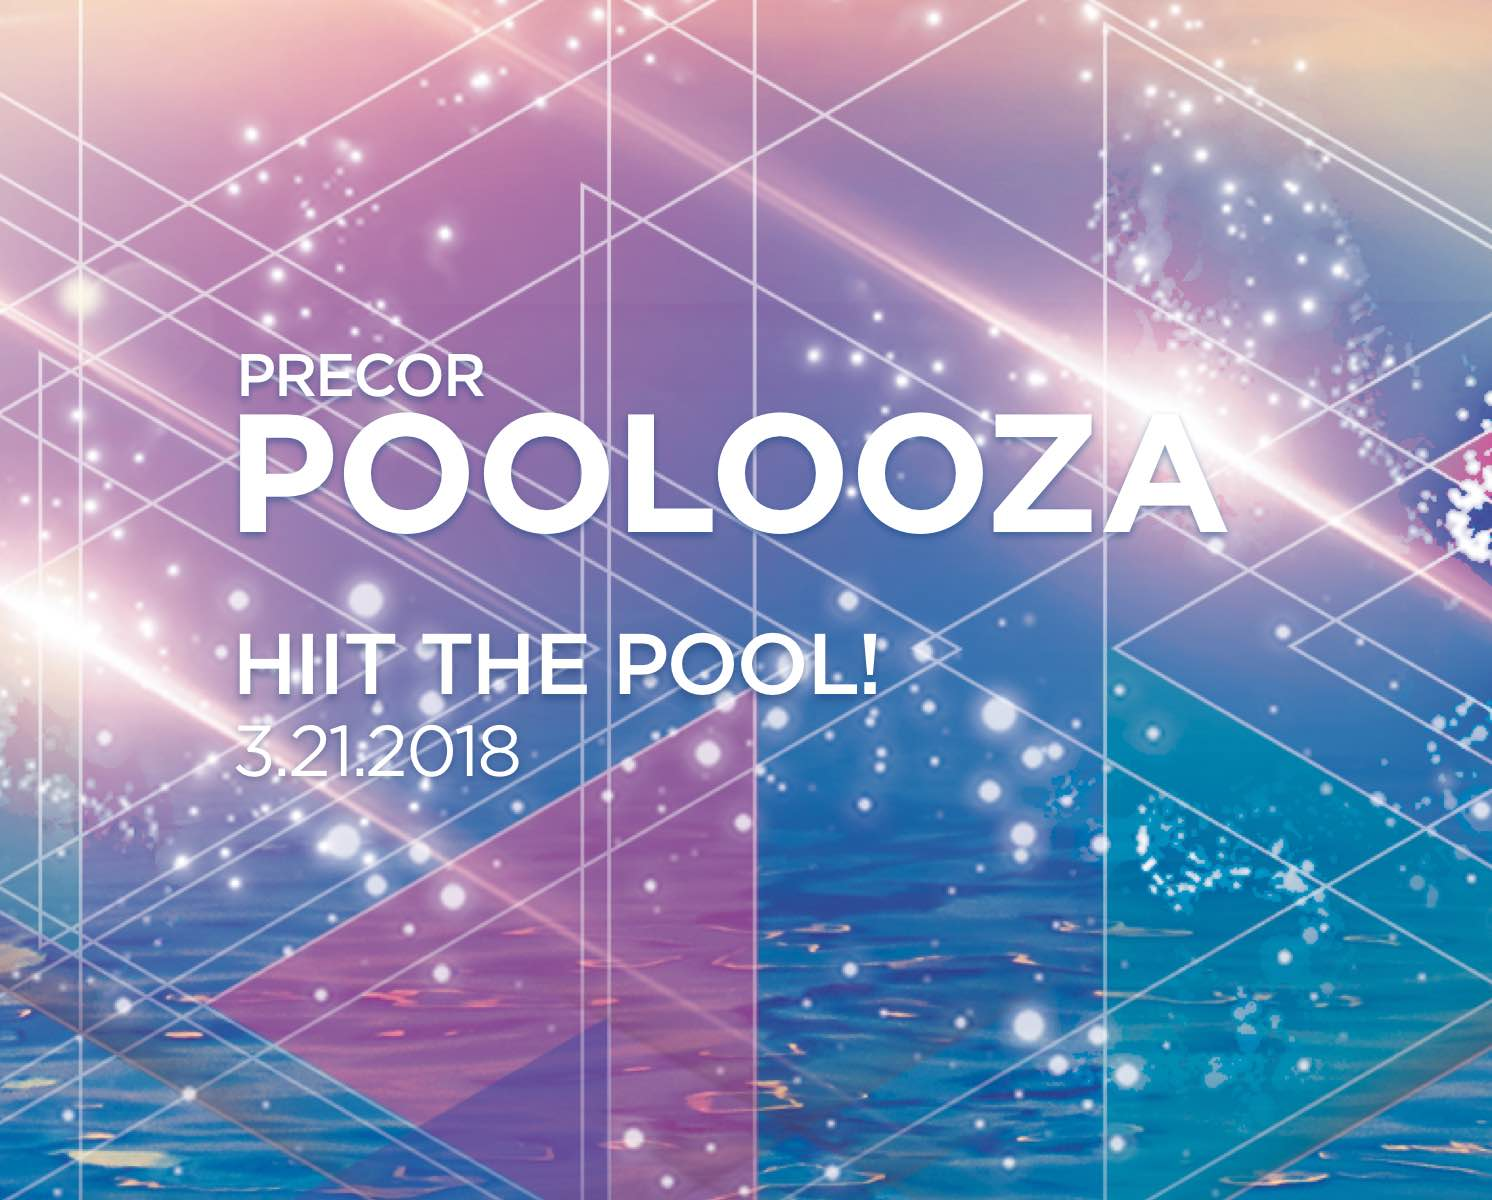 Precor Poolooza - HIIT the Pool - 3/21/18